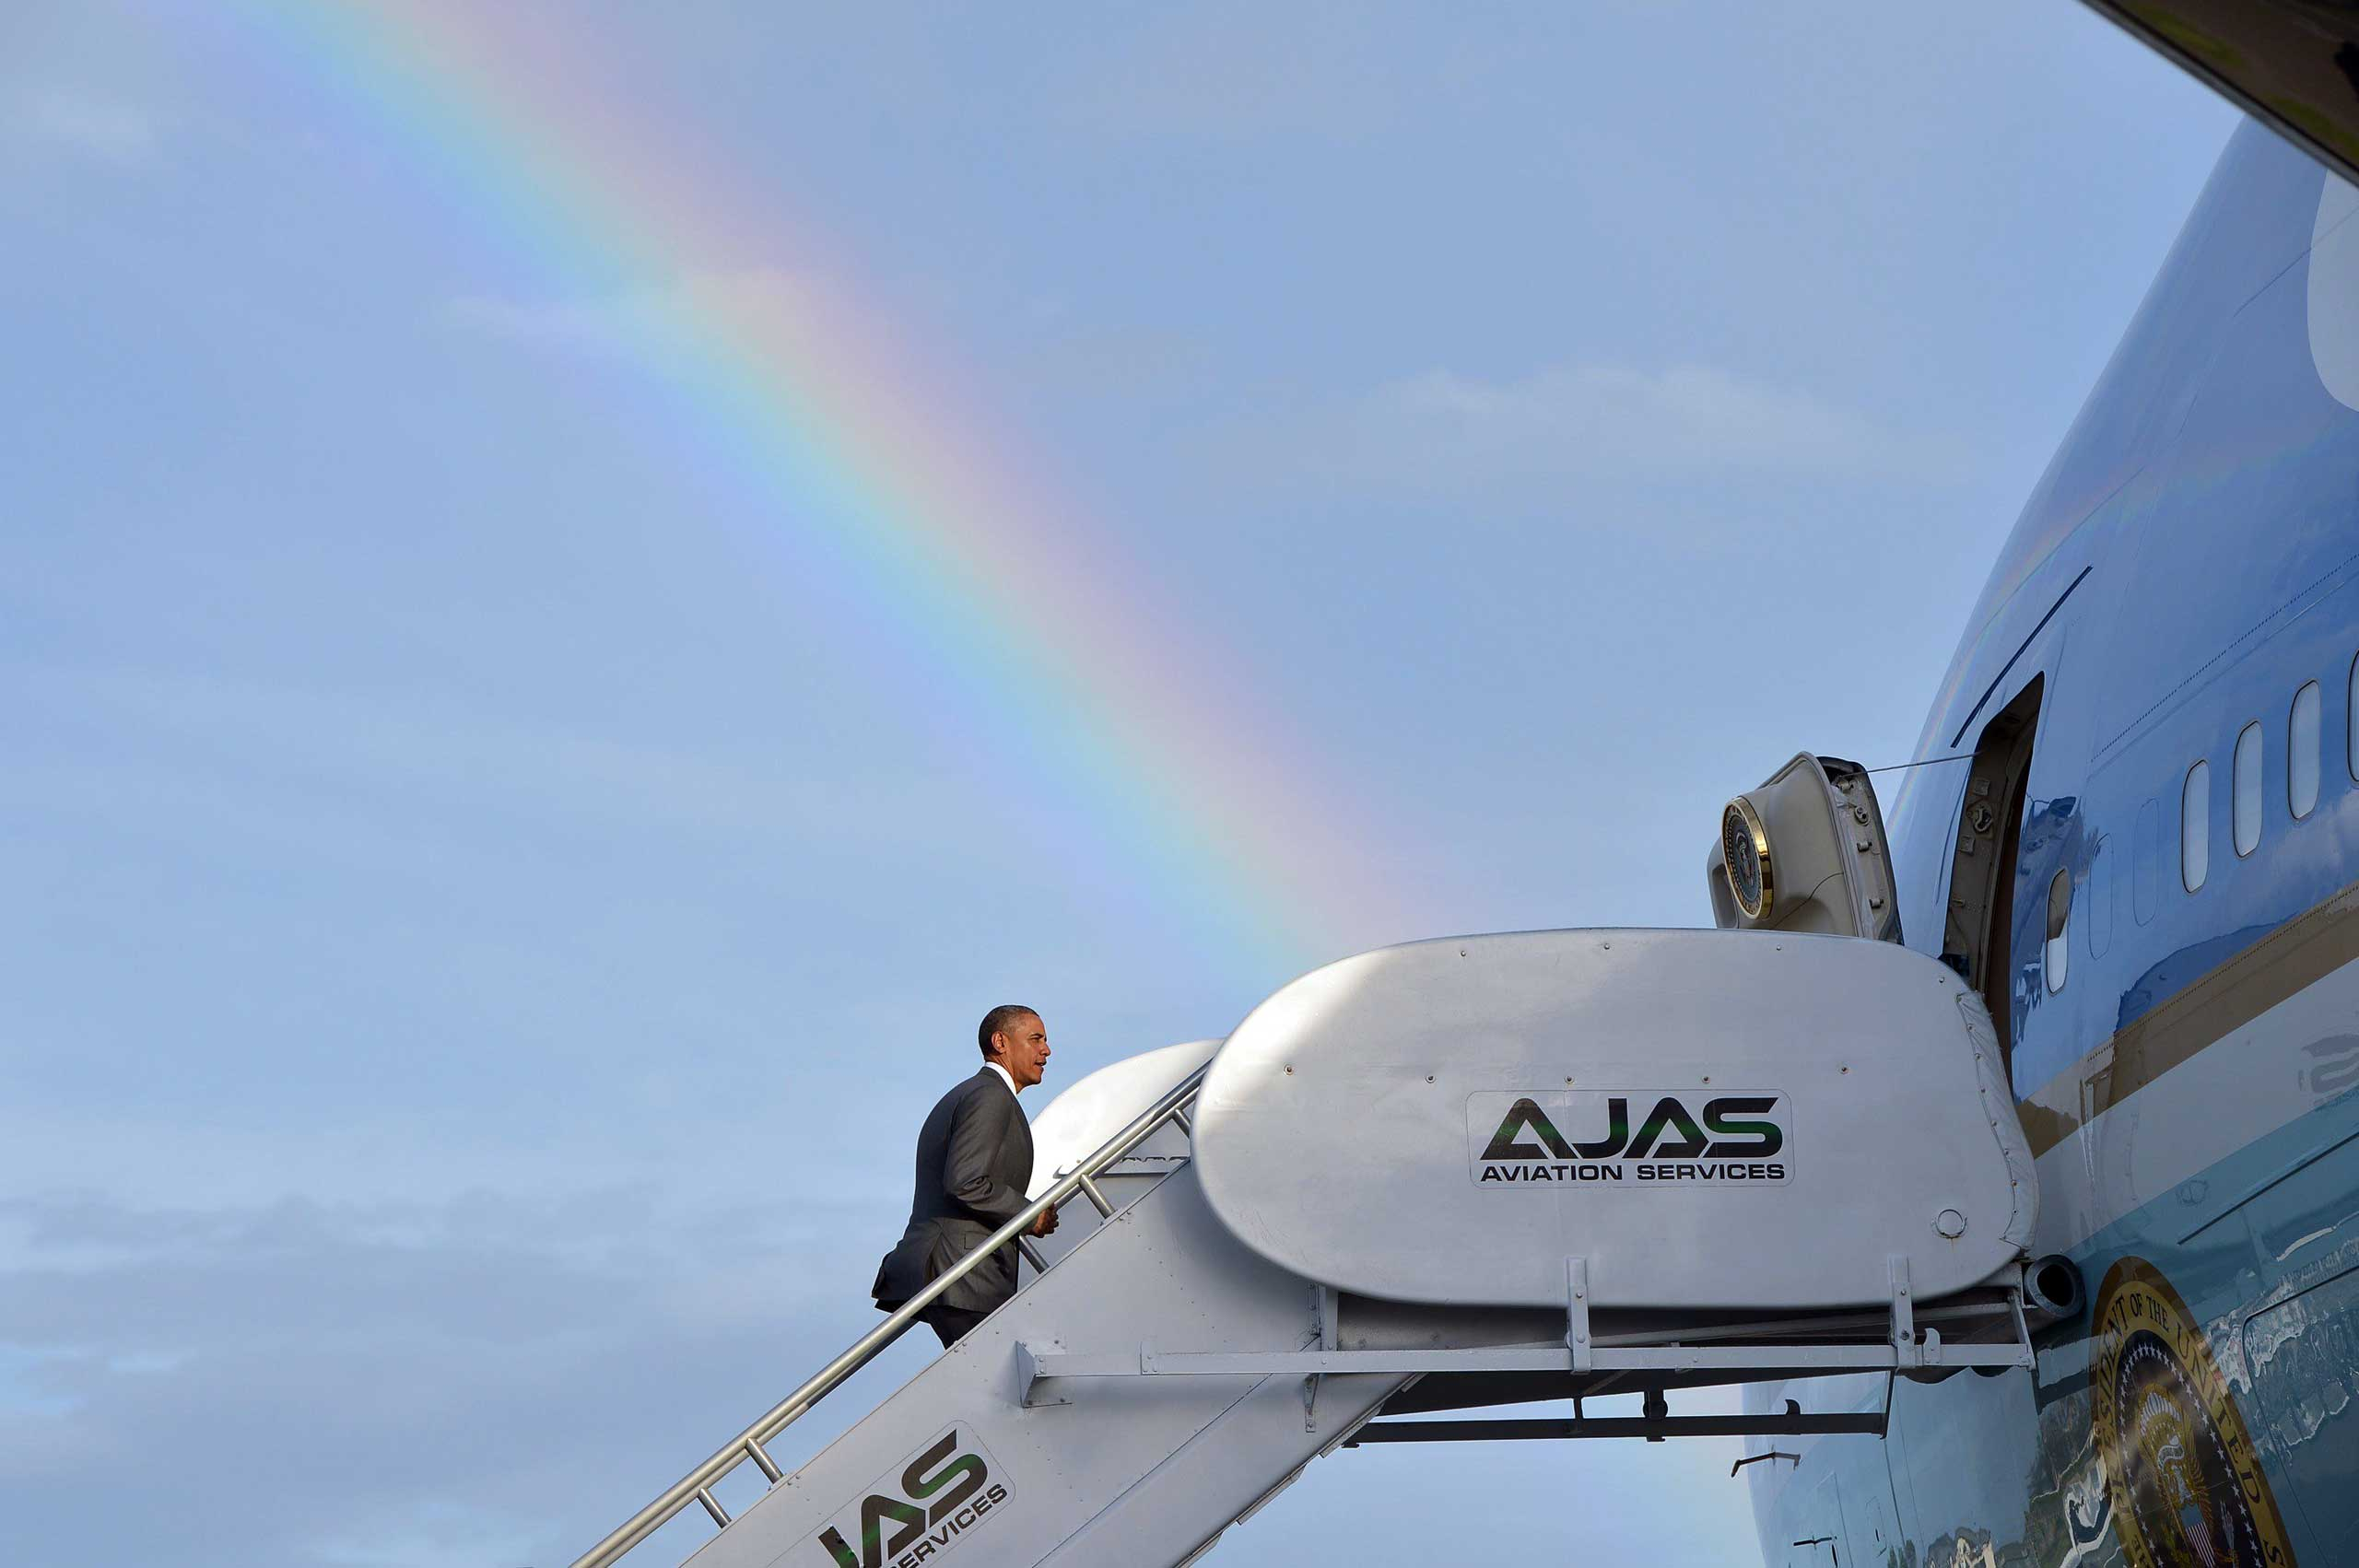 US President Barack Obama makes his way to board Air Force One under a rainbow upon departure from Kingston, Jamaica on April 9, 2015.